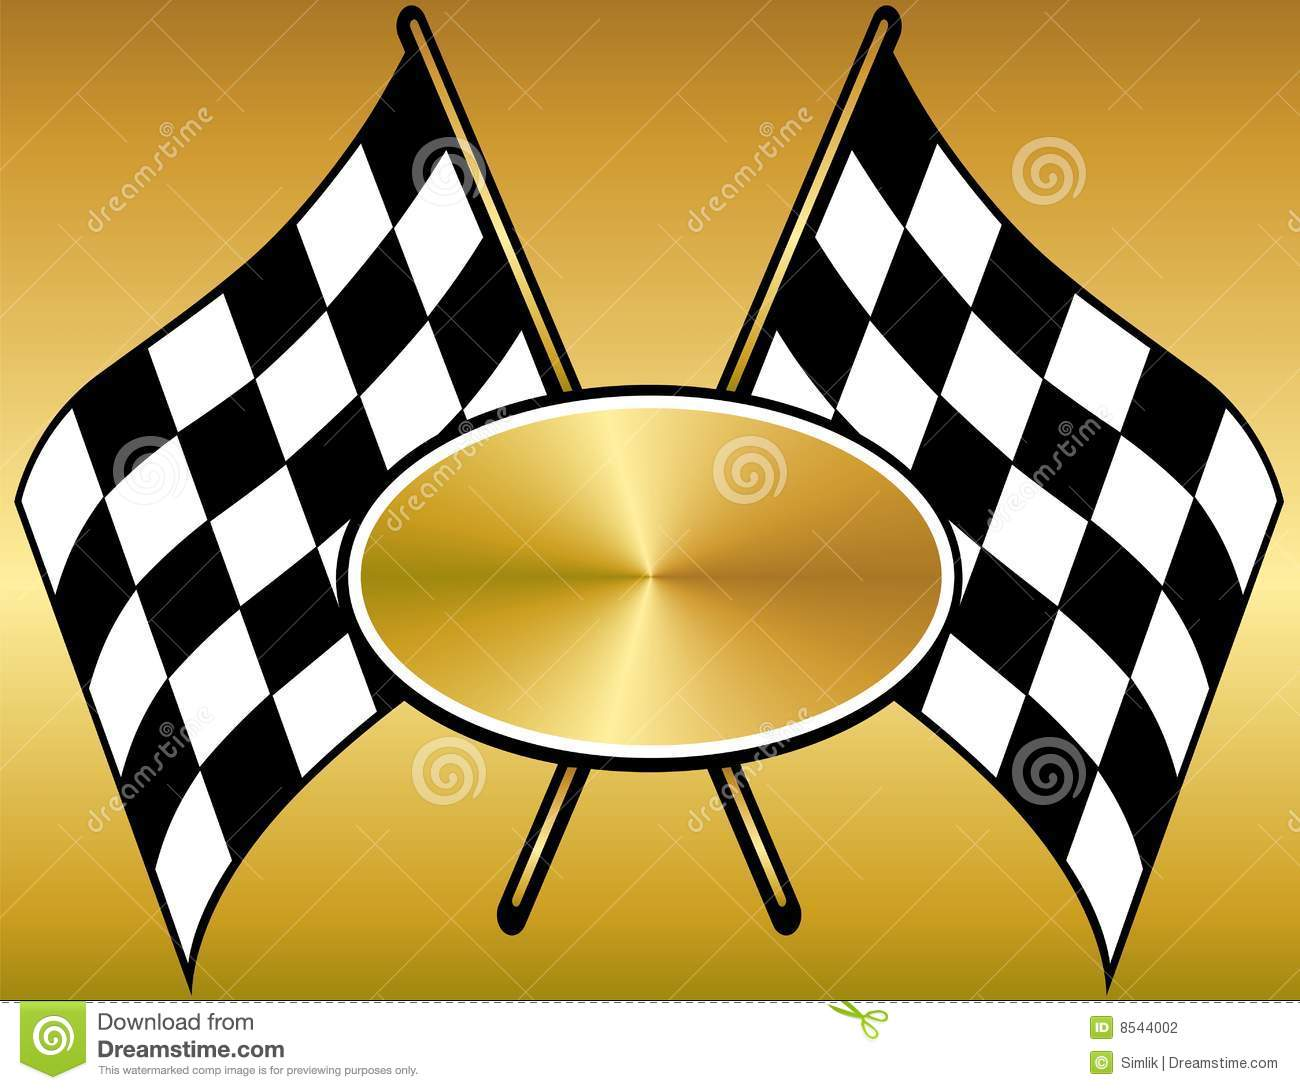 Racing Flags Stock Photography - Image: 8544002: www.dreamstime.com/stock-photography-racing-flags-image8544002